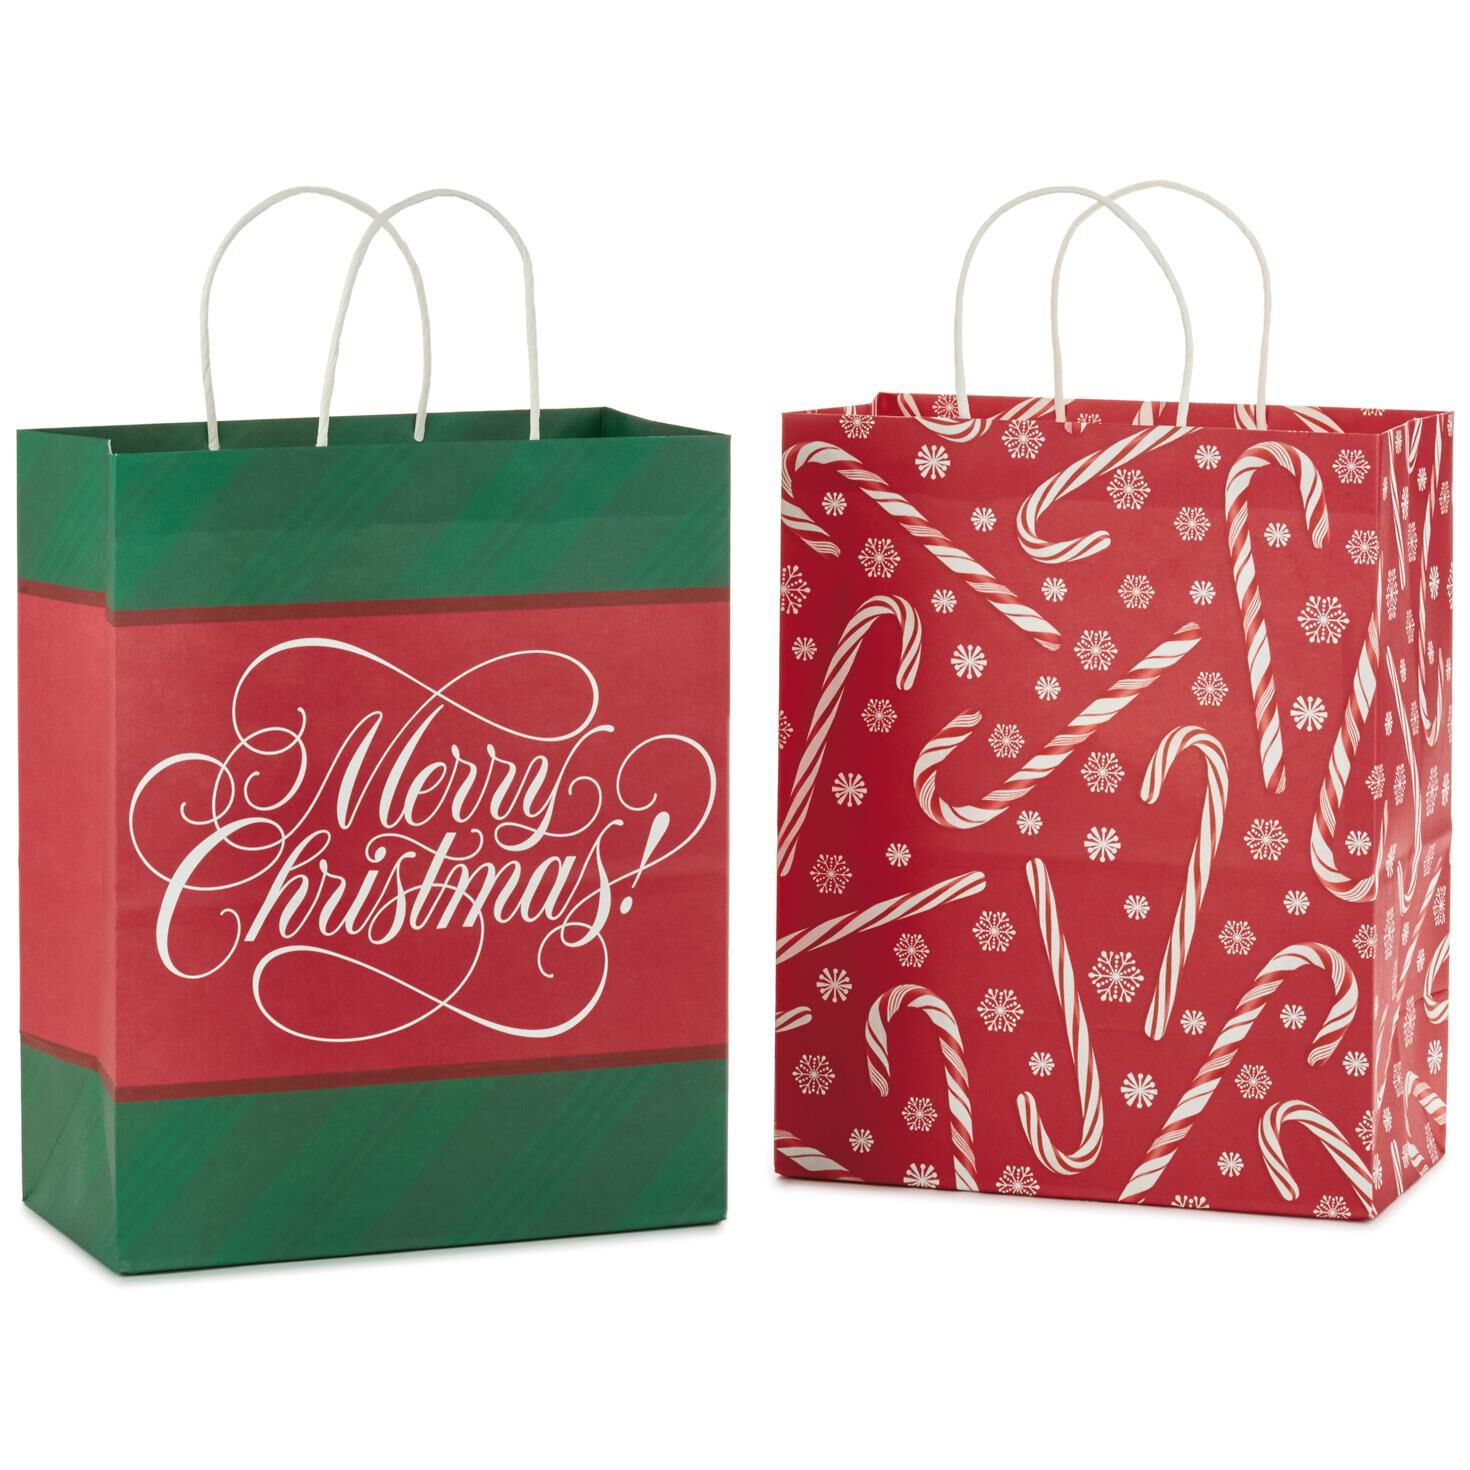 Merry christmas and candy canes large christmas gift bags pack of merry christmas and candy canes large christmas gift bags pack of 2 gift bags hallmark negle Choice Image